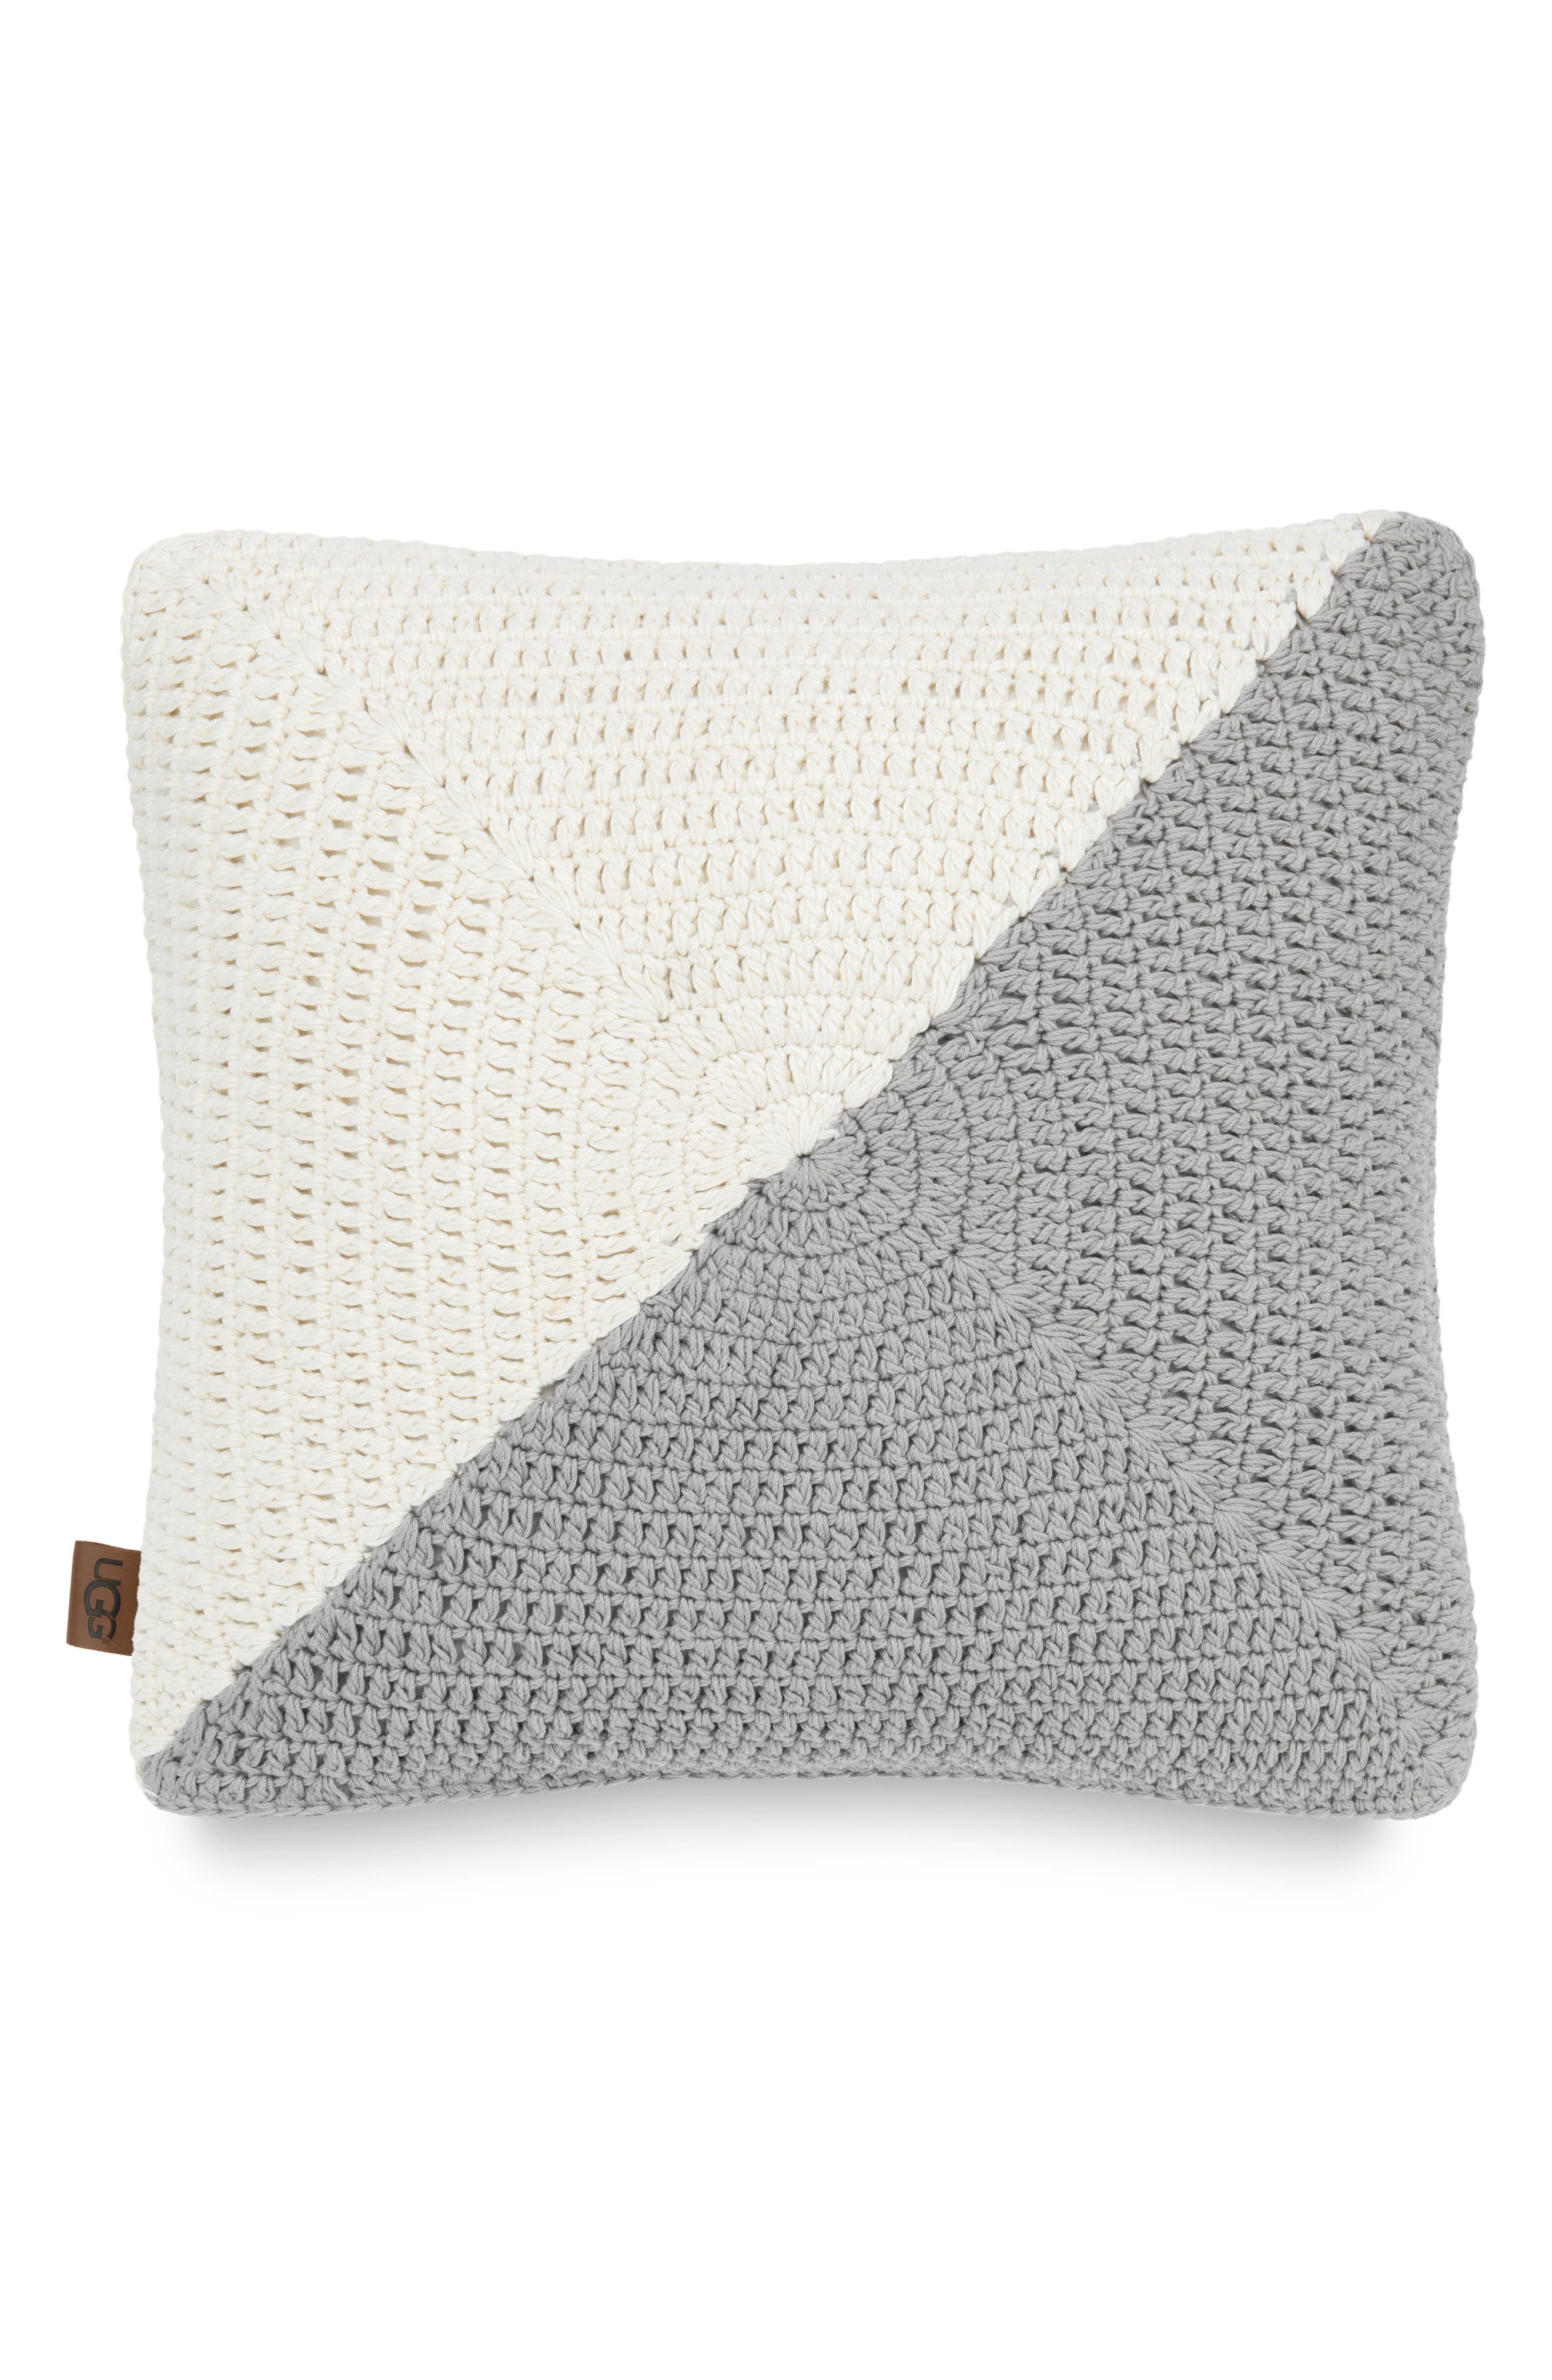 UGG<SUP>®</SUP> Colorblock Crochet Accent Pillow, Main, color, SEAL/ SNOW